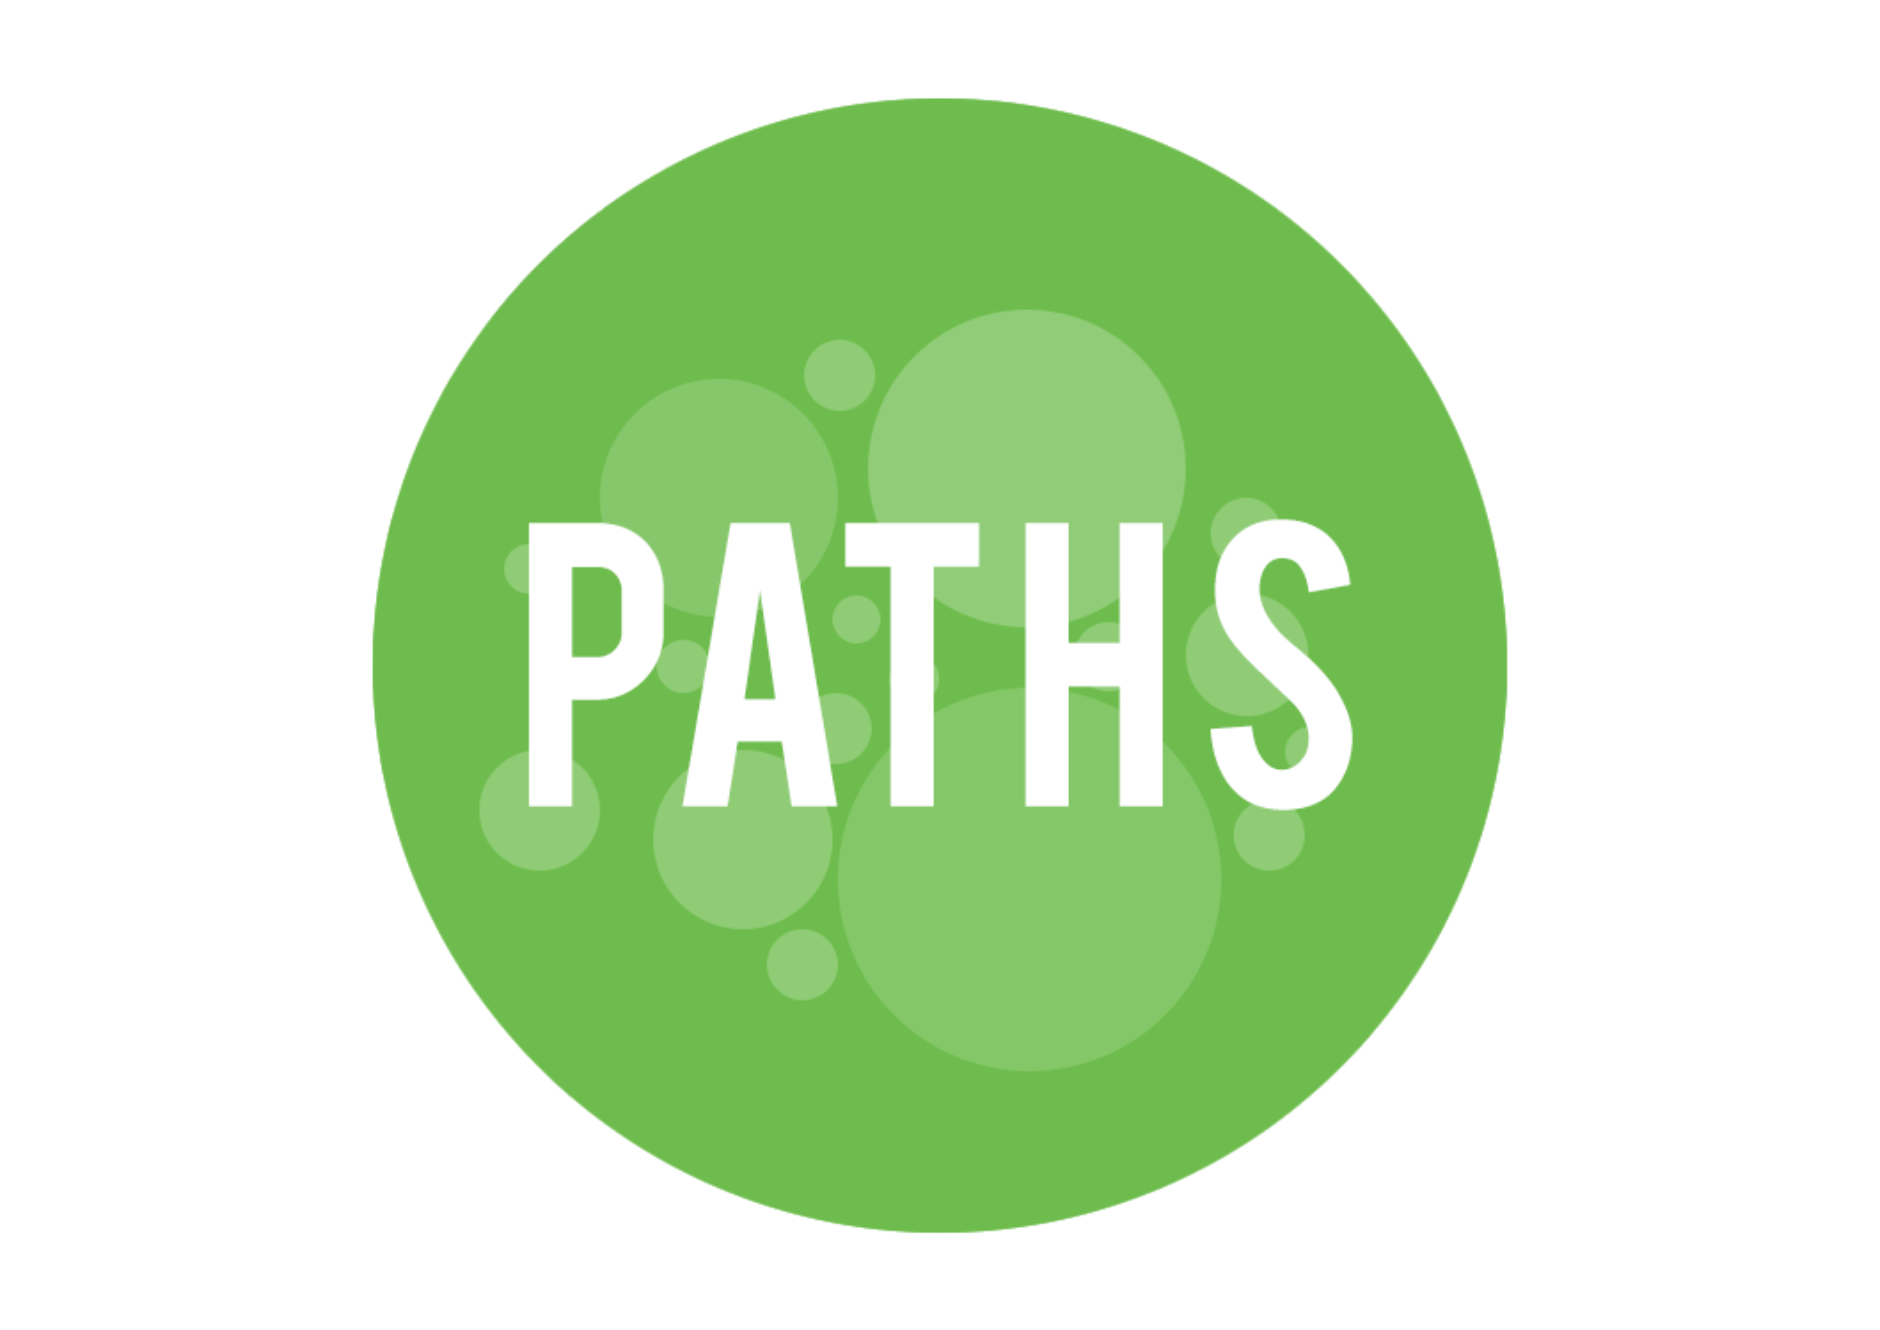 Paths, by Biome Collective